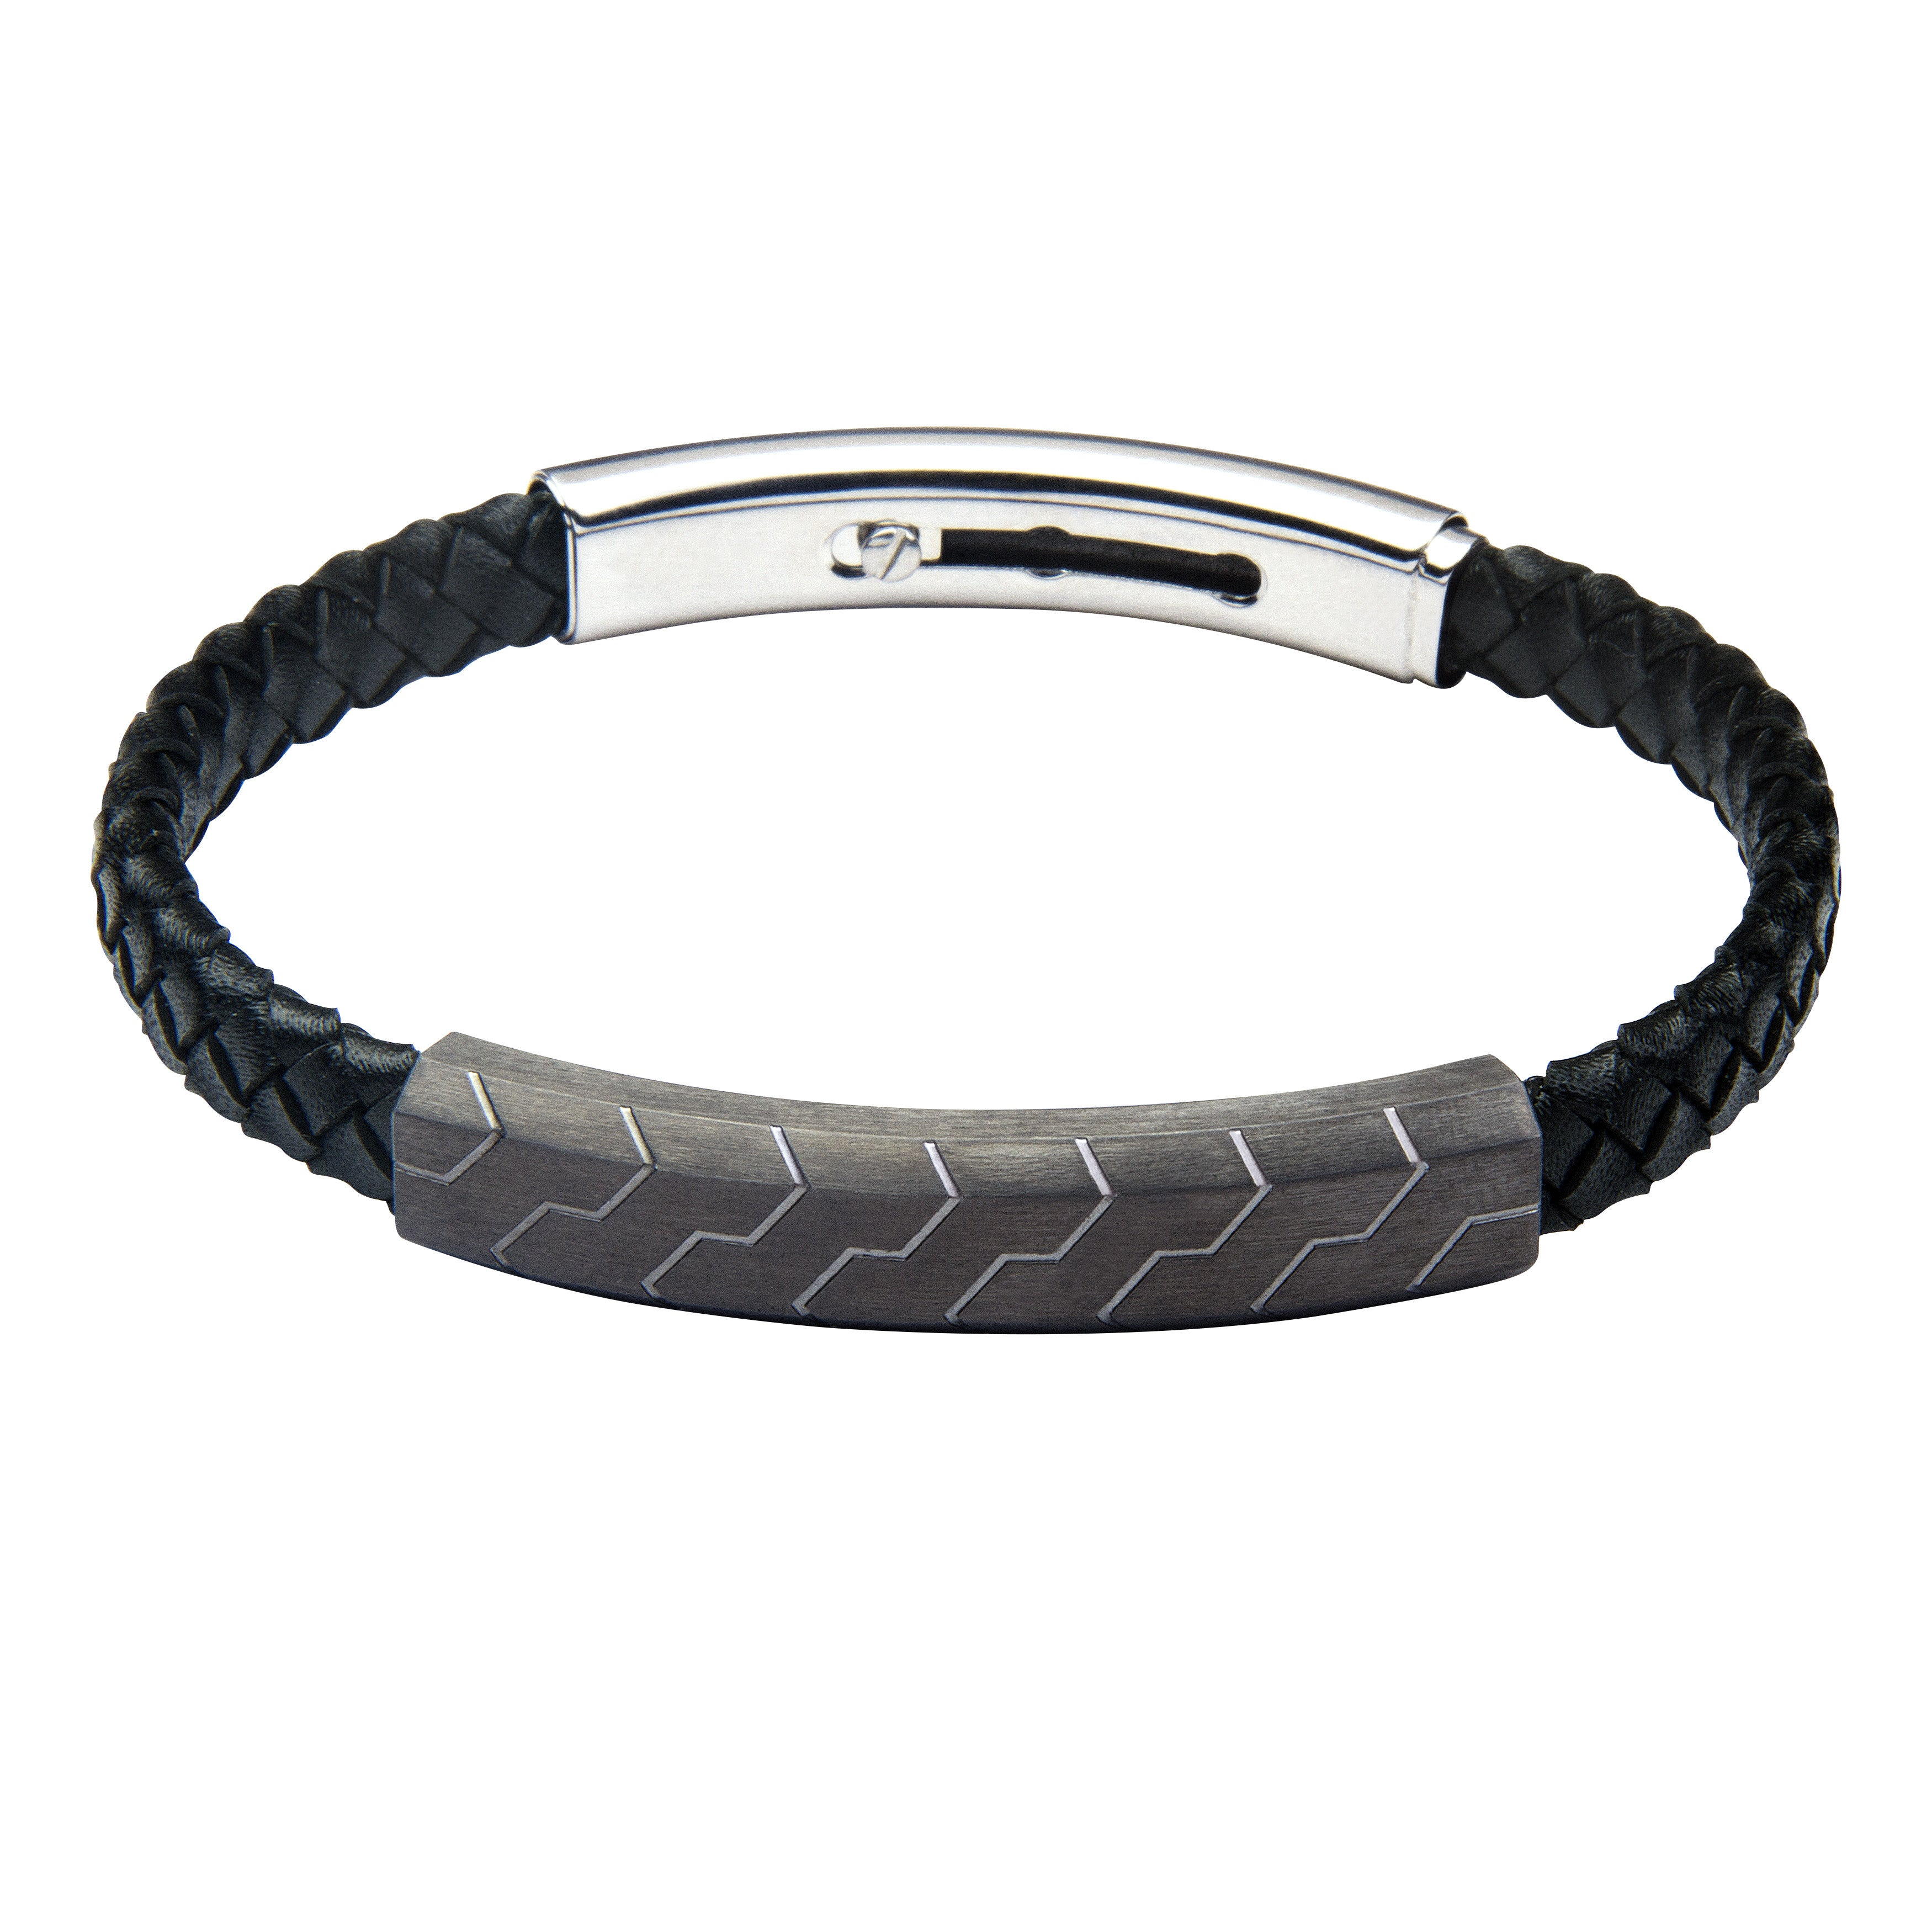 FUB12 leather and steel adjustable bracelet